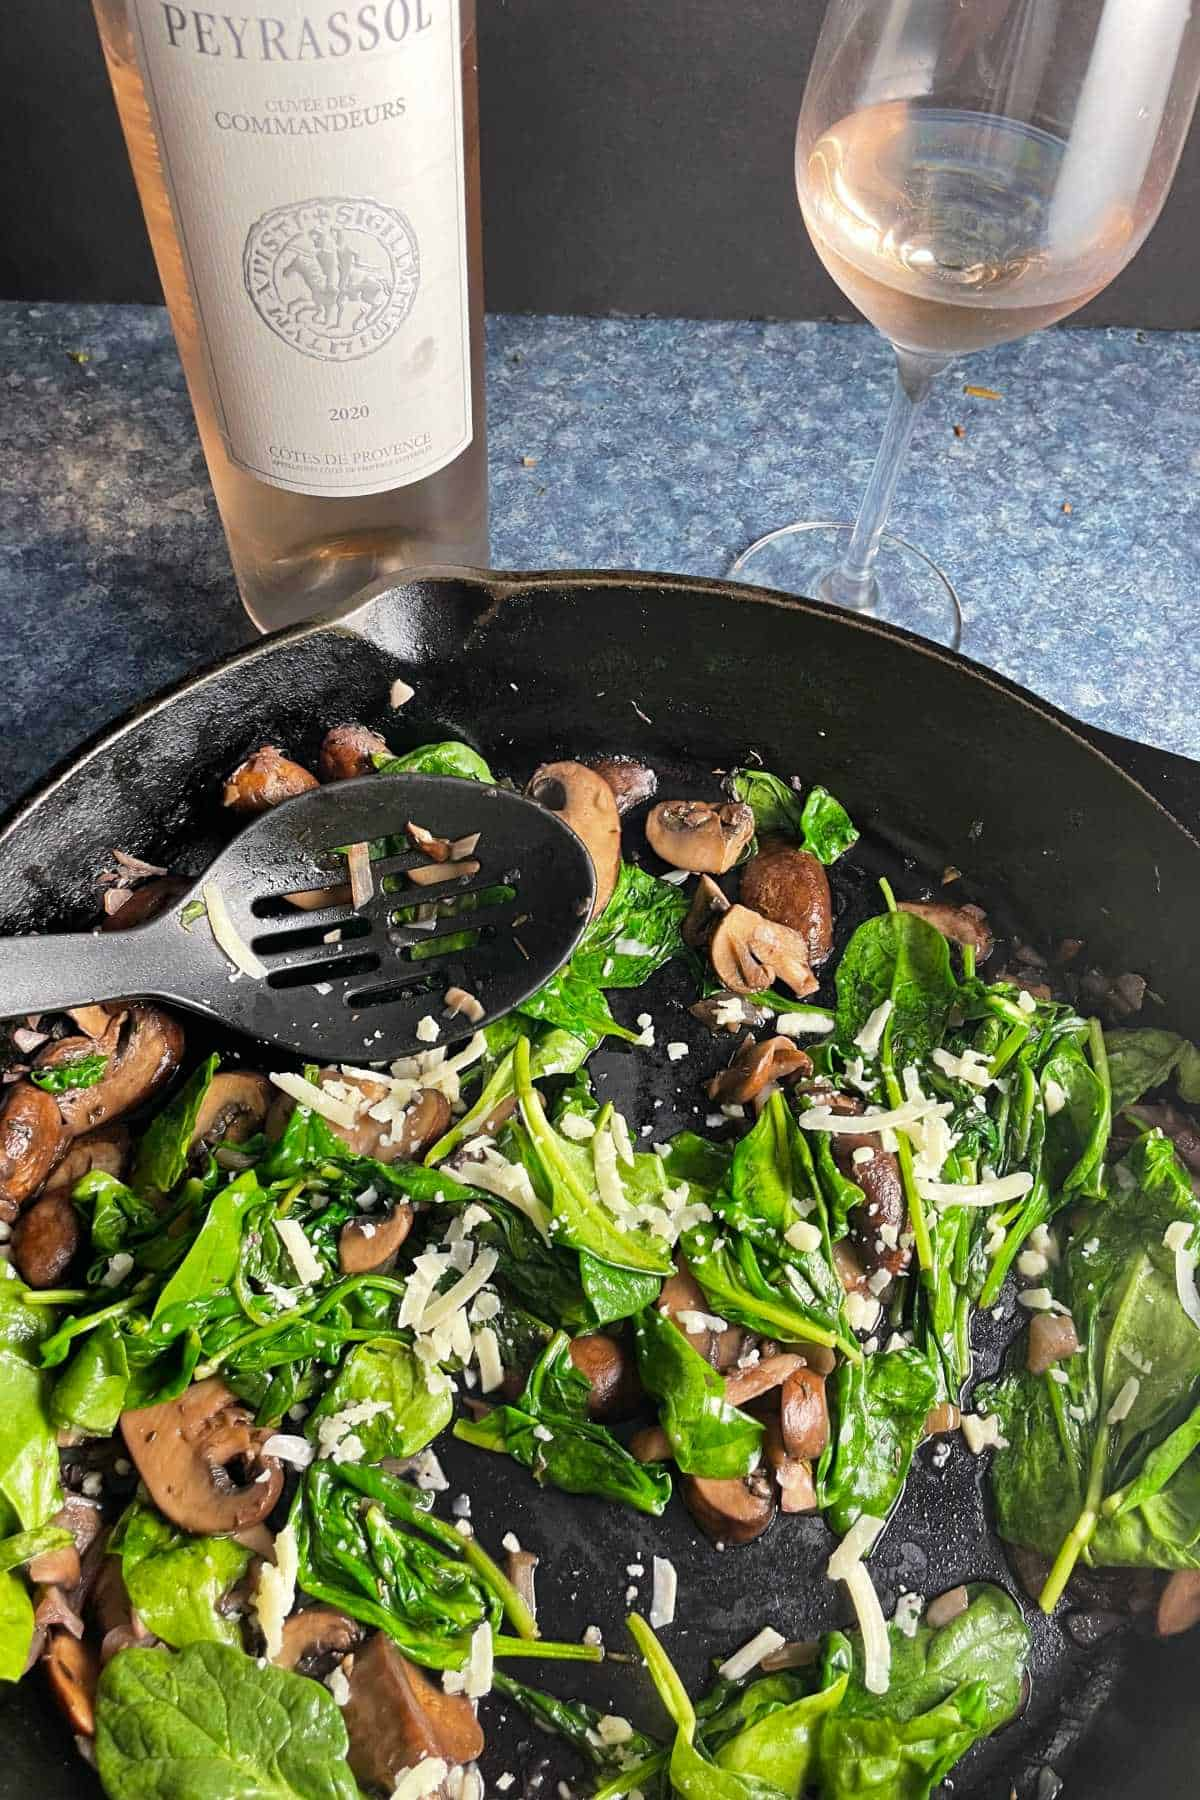 sautéed spinach and mushrooms in a skillet served with a rosé wine.